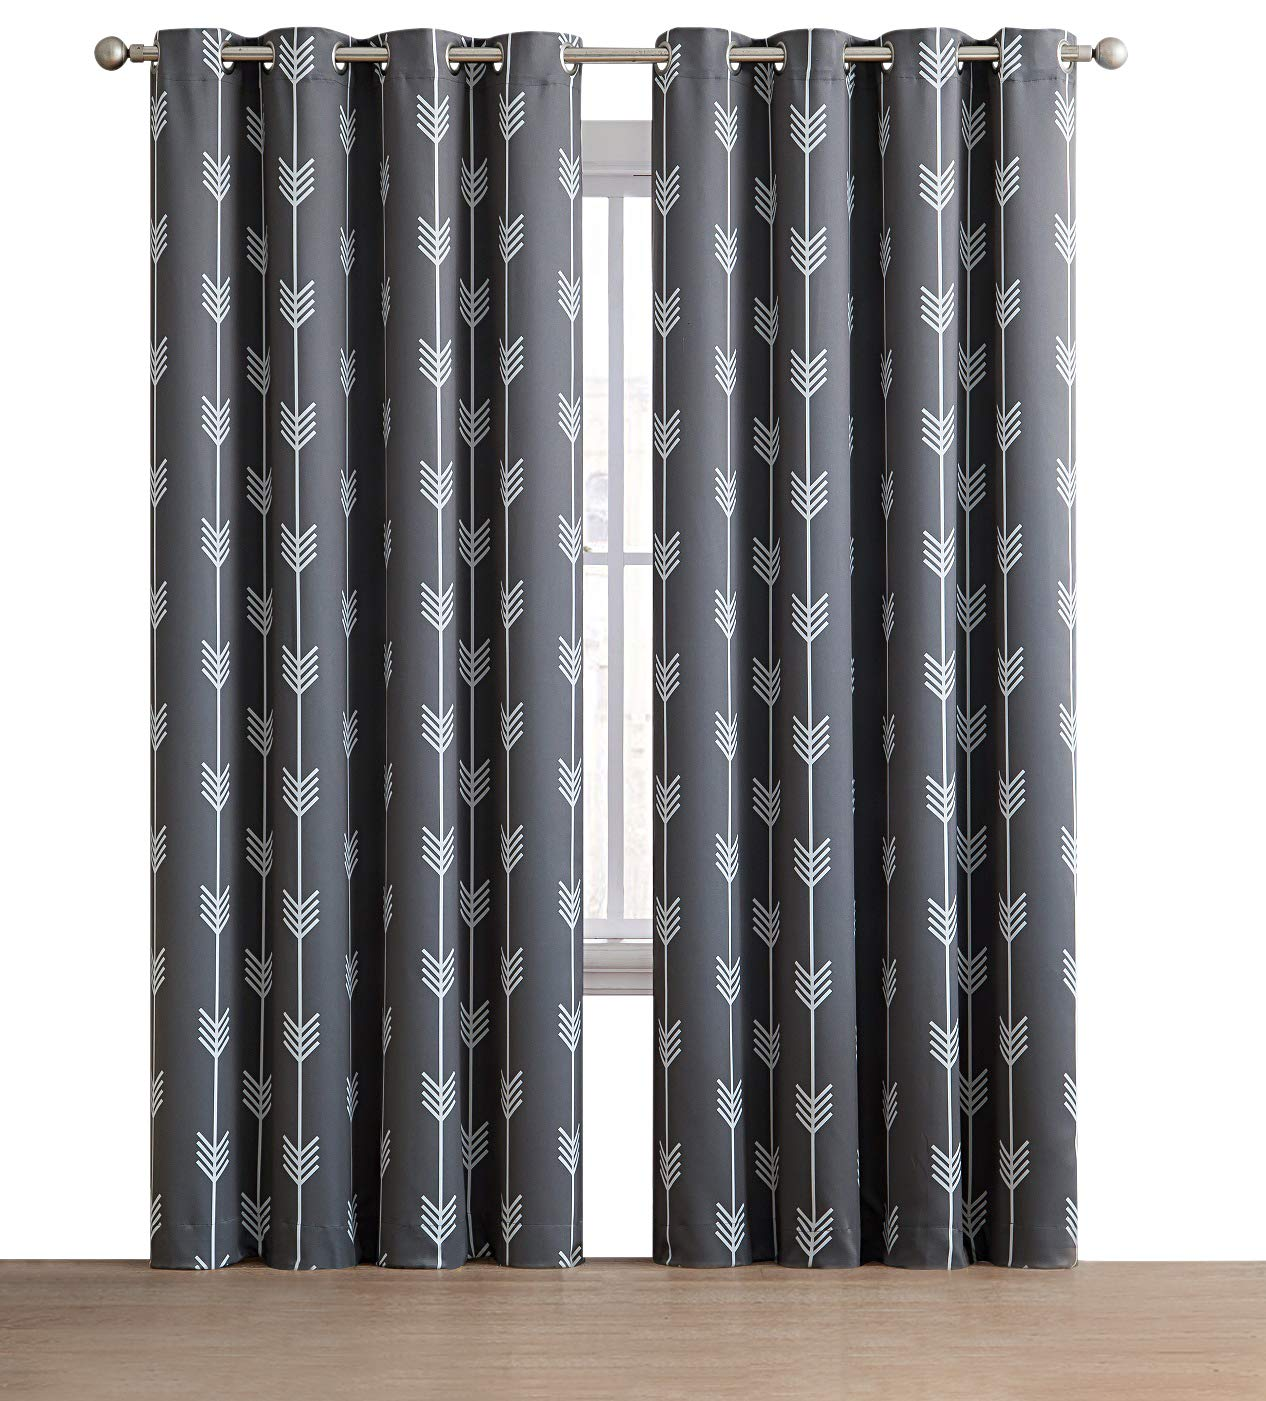 HLC.ME Arrow Printed Blackout Room Darkening Thermal Grommet Window Curtain Drape Panels for Kids Room